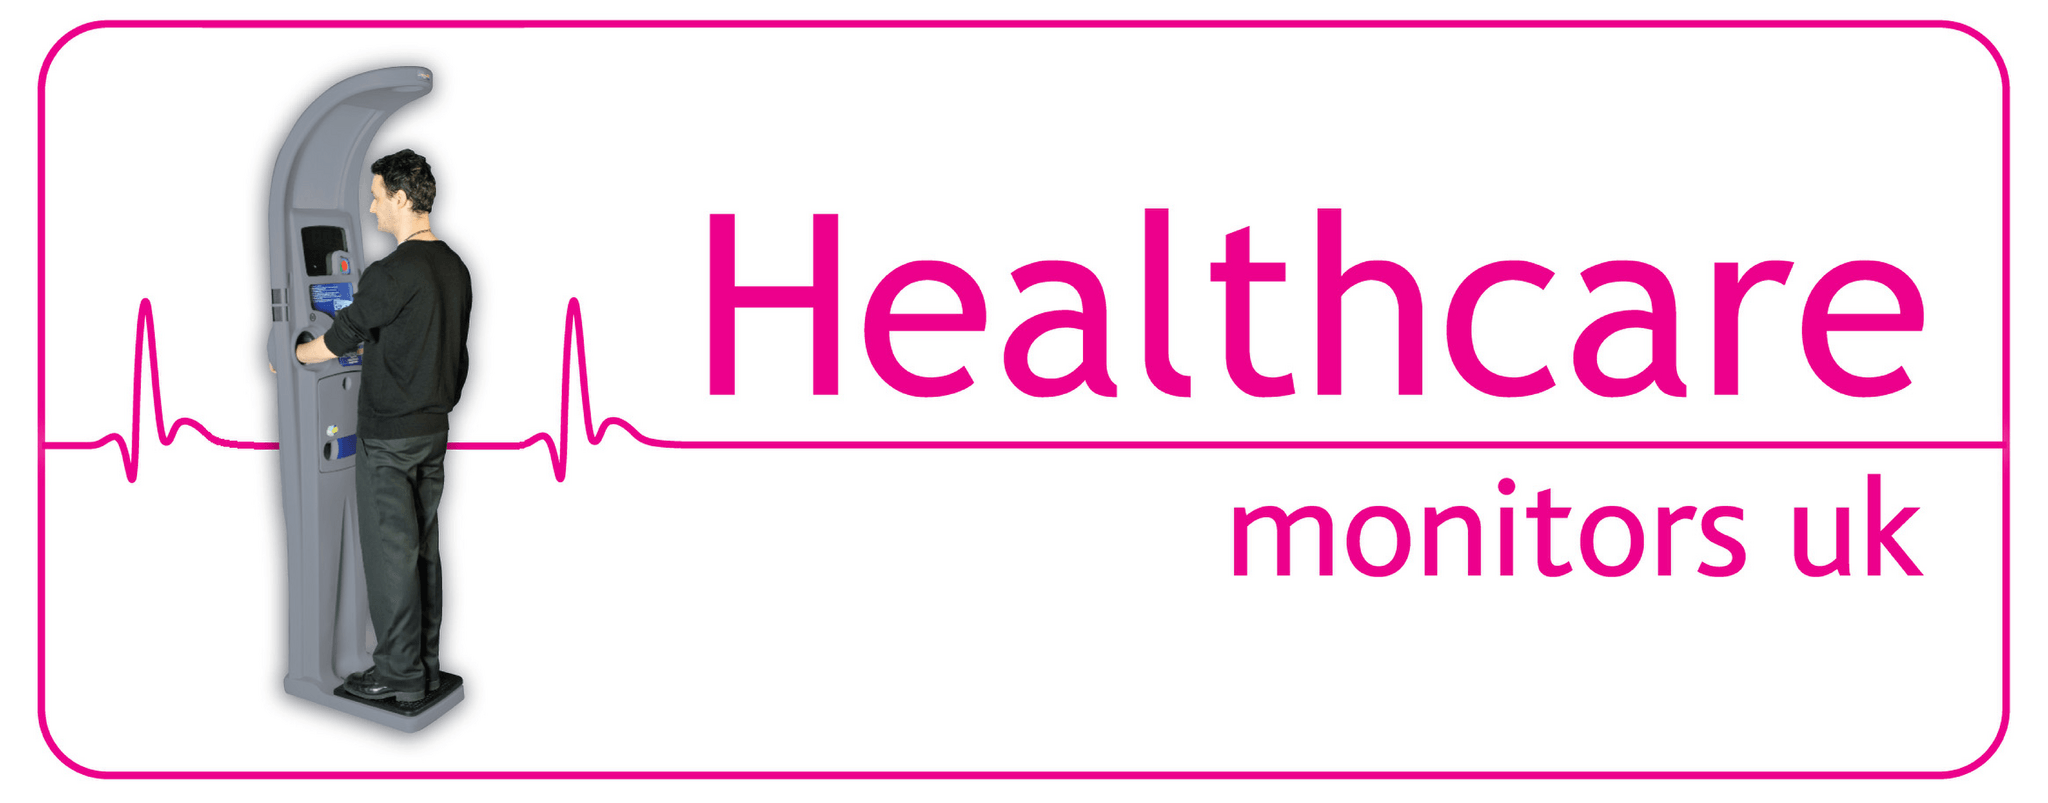 Healthcare Monitors UK